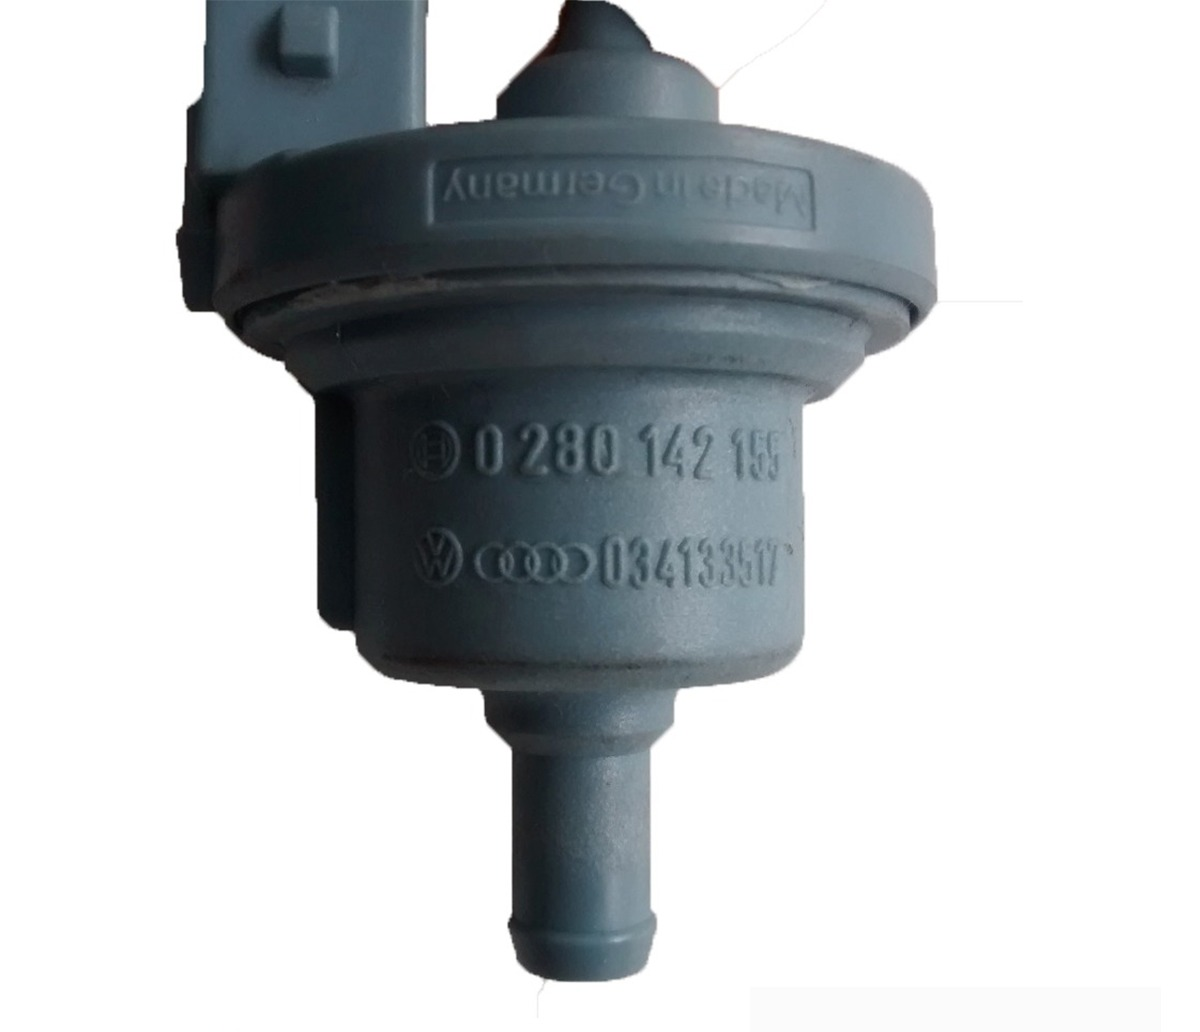 VALVULA CANISTER BOSCH GOLF GOL POLO 0280142155 054 133 517